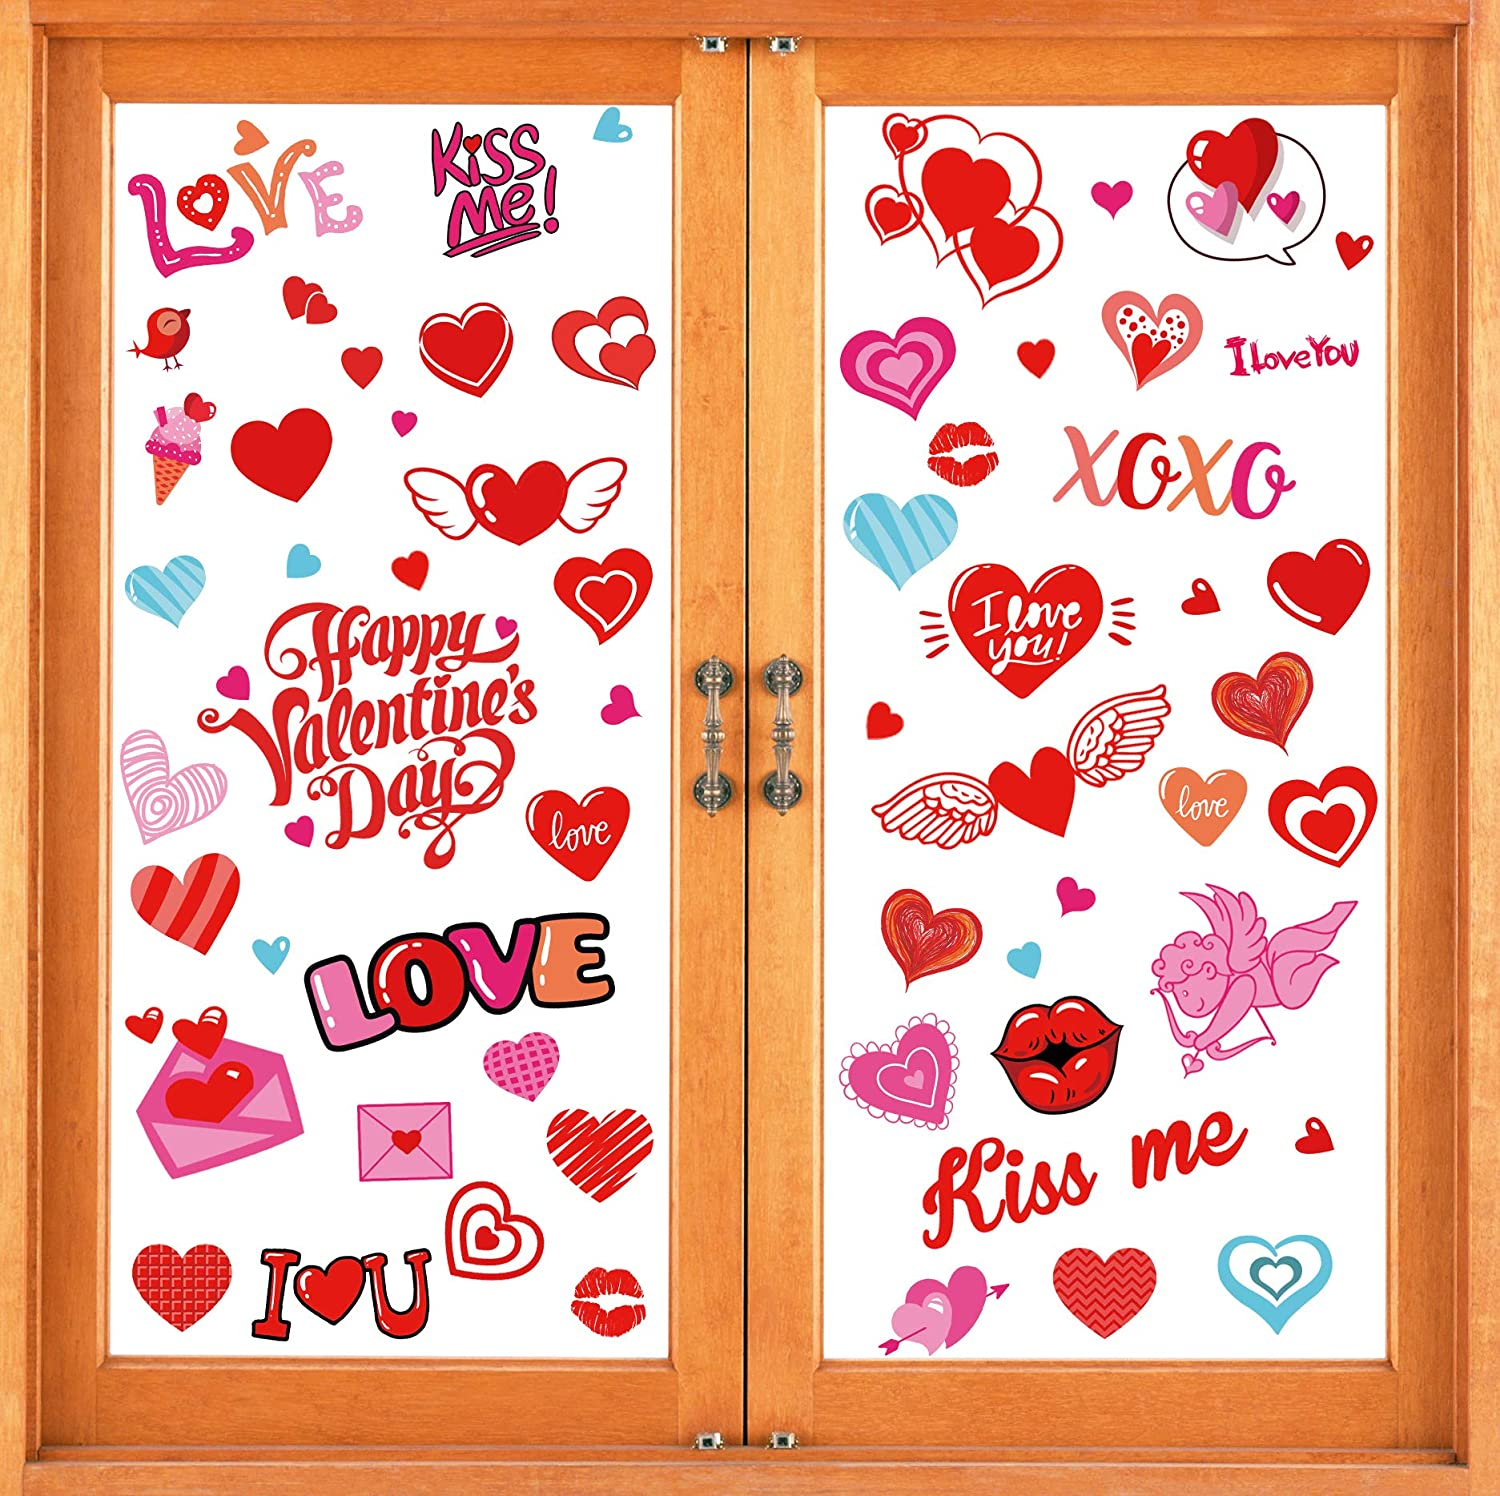 jollylife 230PCS Valentine's Day Window Clings Decorations - Heart Decal Party Ornaments Supplies